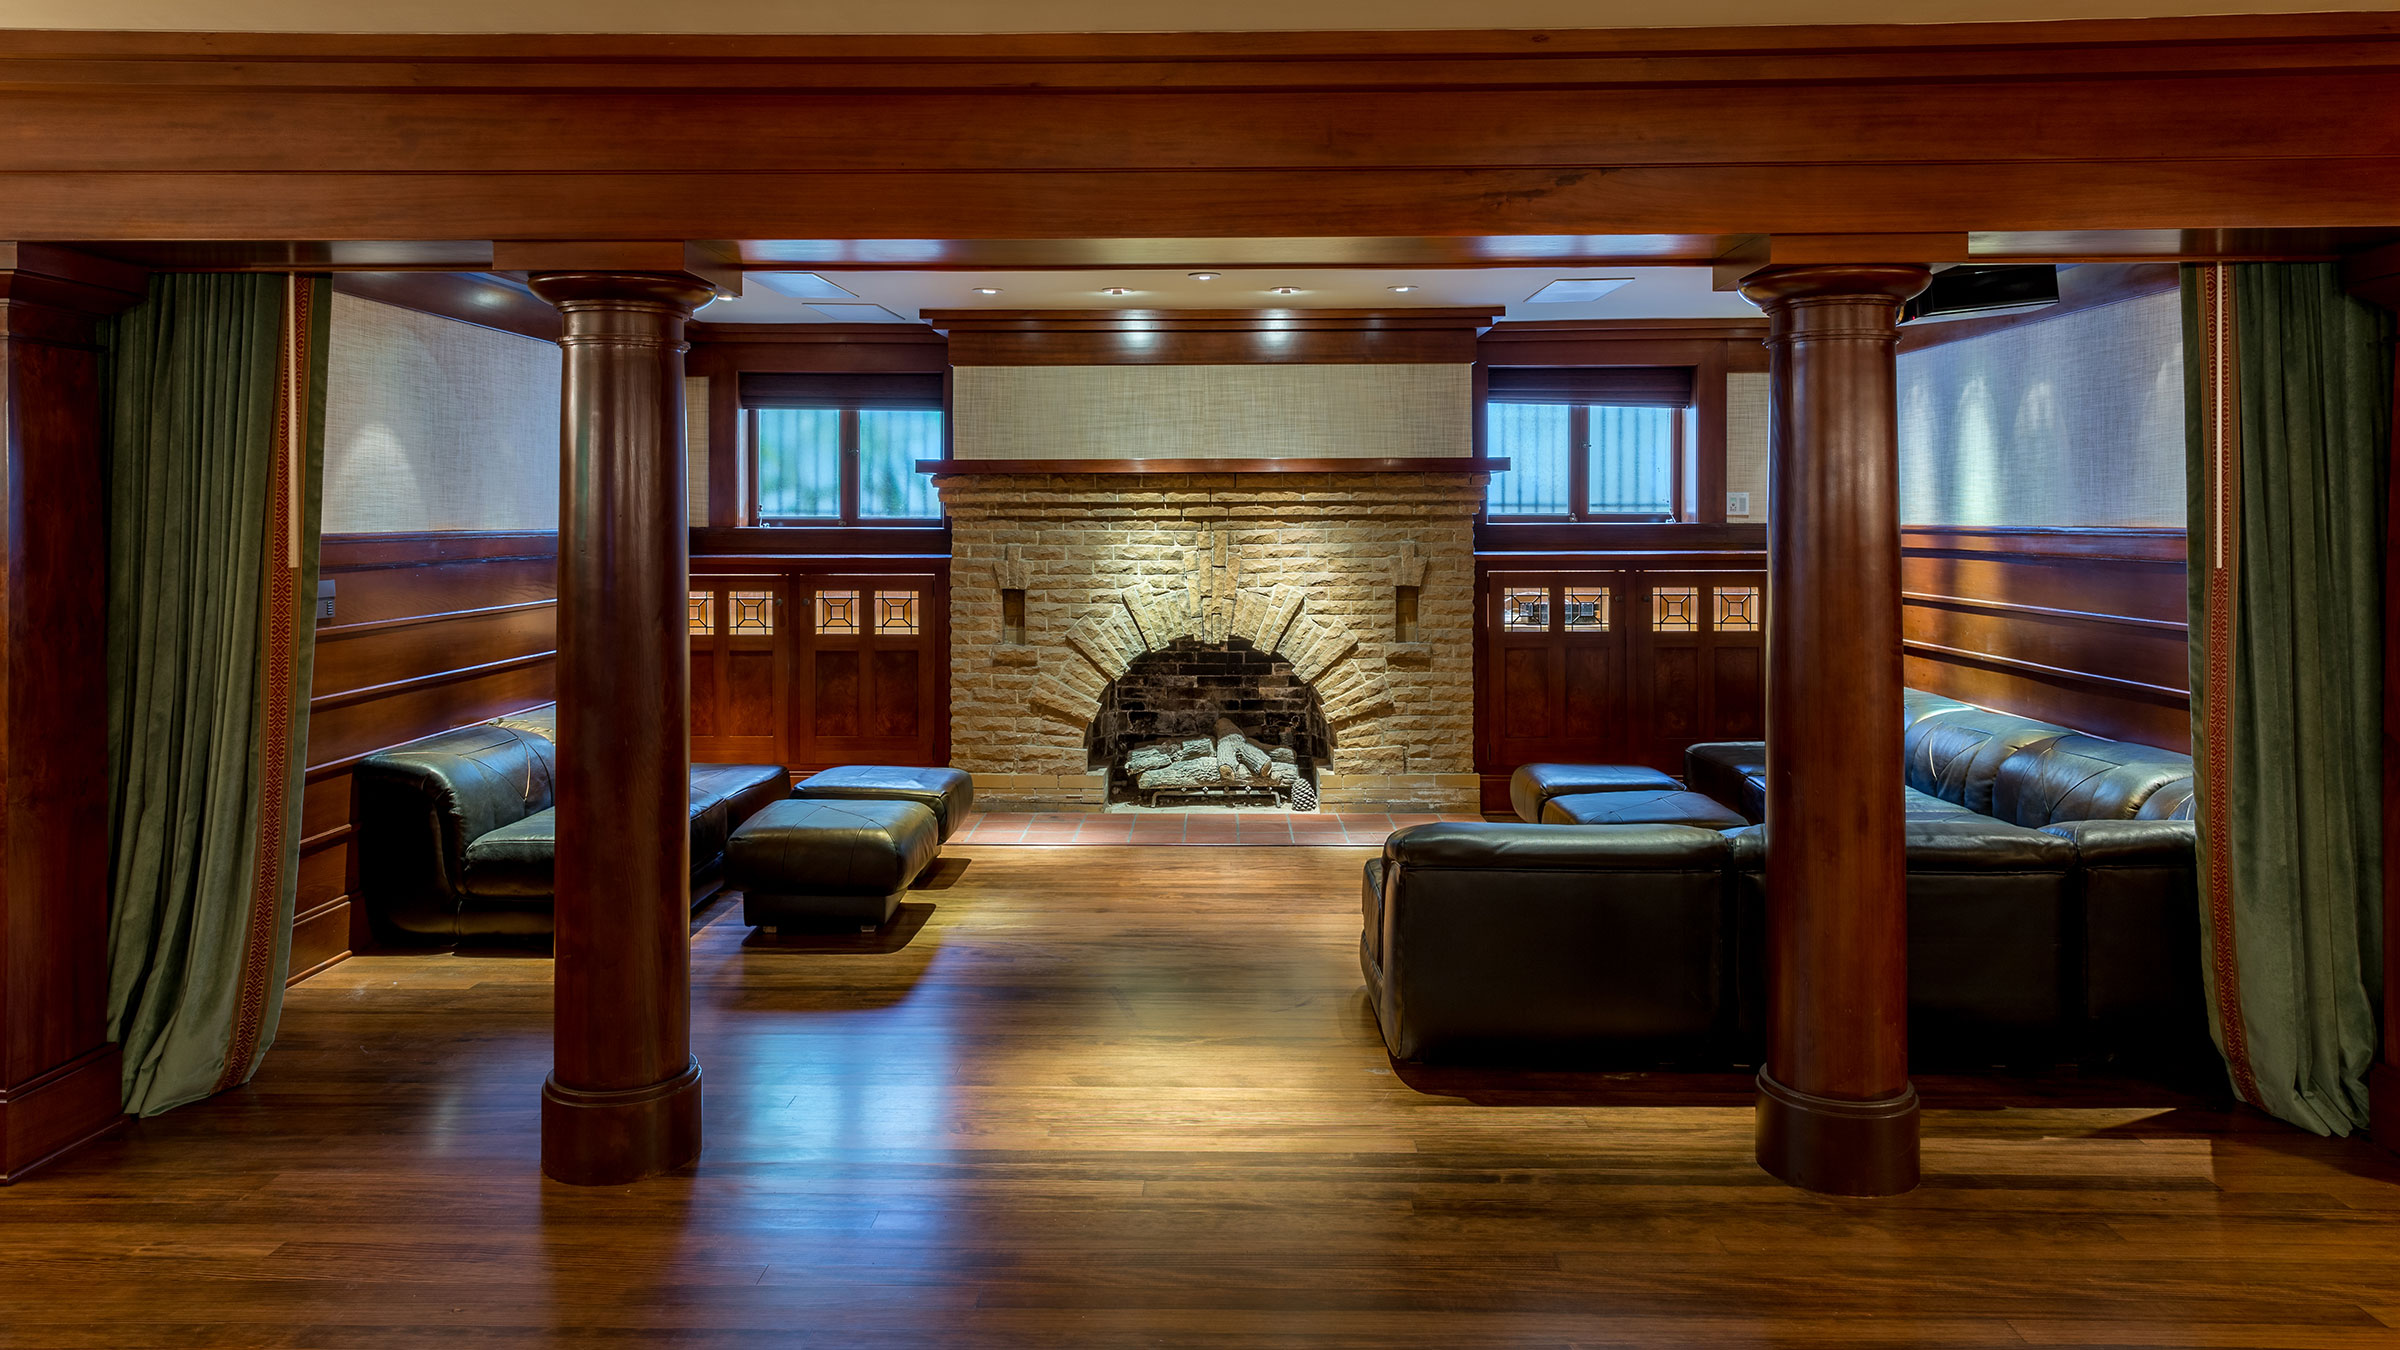 Clark Mansion Alameda Lounge Area with Fireplace Buestad Construction